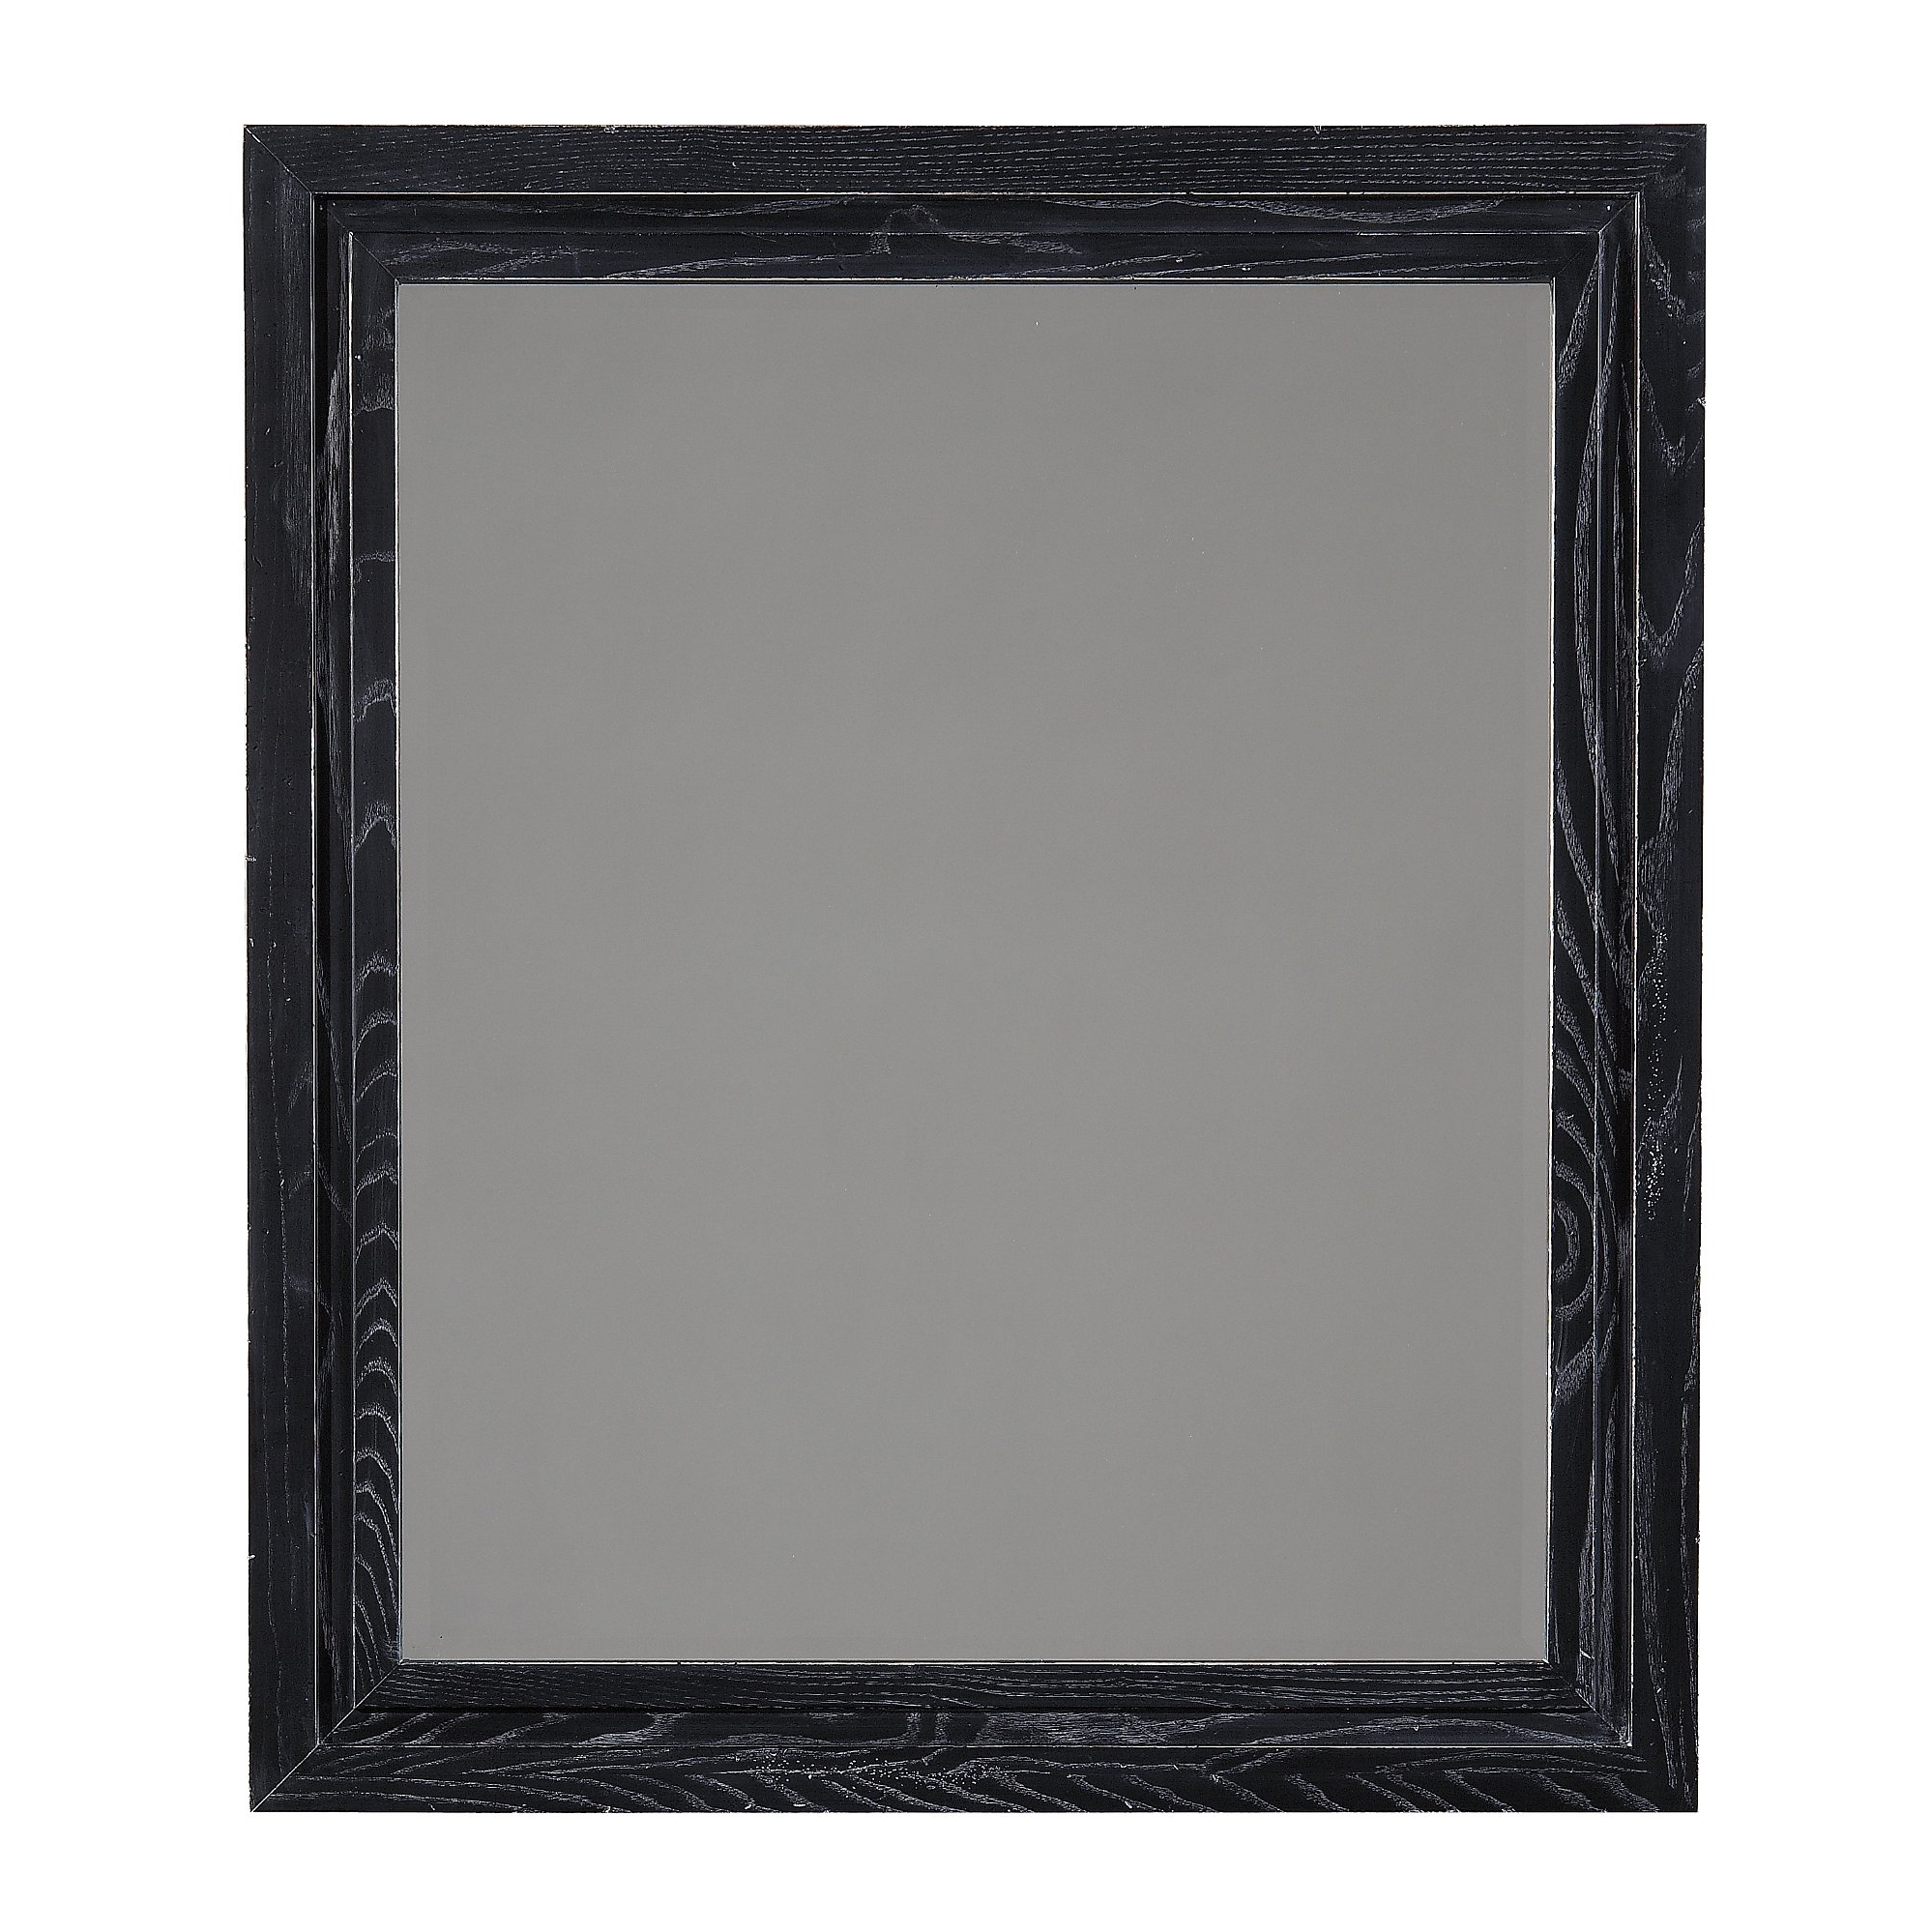 Vassallo Beaded Bronze Beveled Wall Mirrors Pertaining To Well Known Rosston Rectangle Wood Framed End Wall Mirror (View 17 of 20)